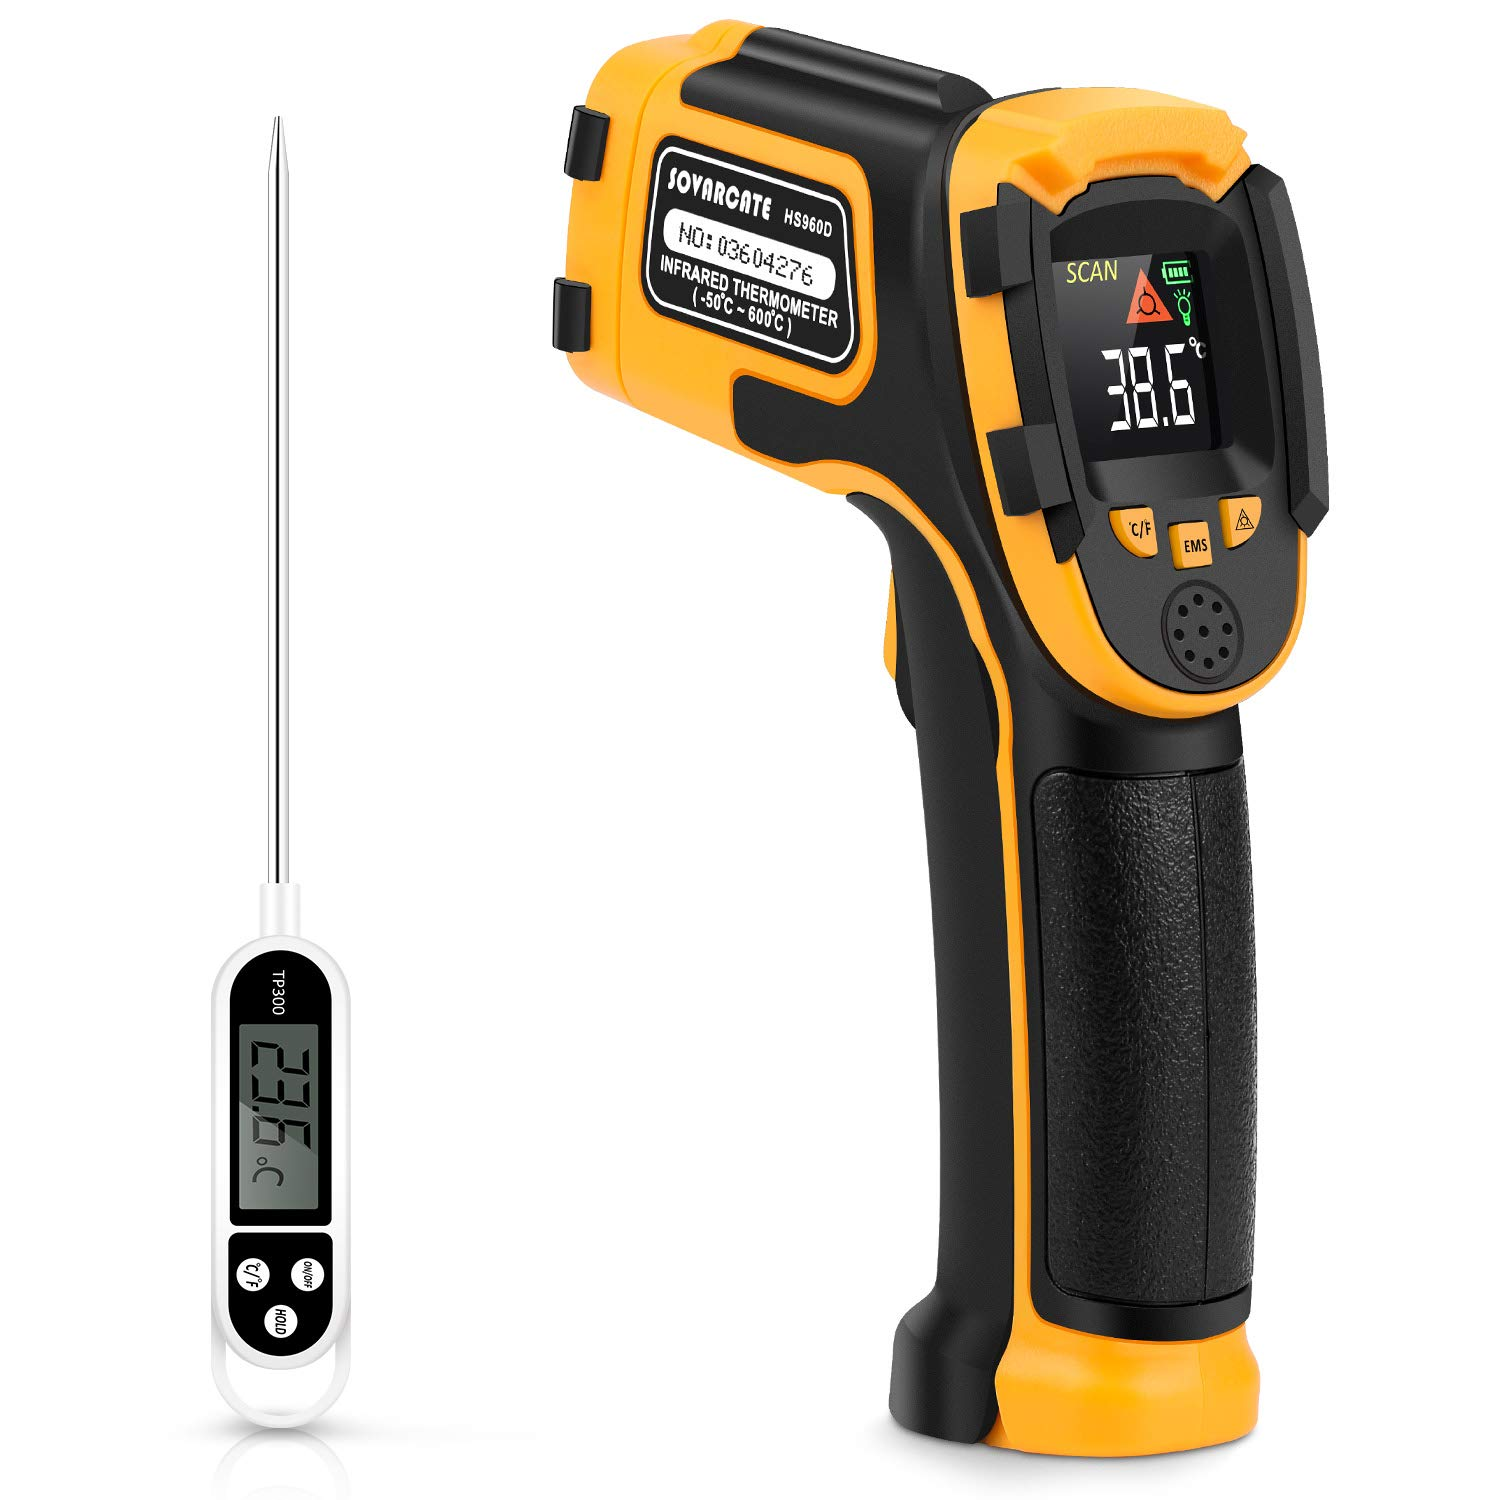 Infrared Thermometer Non-Contact Digital Laser Temperature Gun with Color Display -58℉~1112℉(-50℃~600℃) Adjustable Emissivity - Temperature Probe for Cooking/BBQ/Freezer - Meat Thermometer Included by SOVARCATE